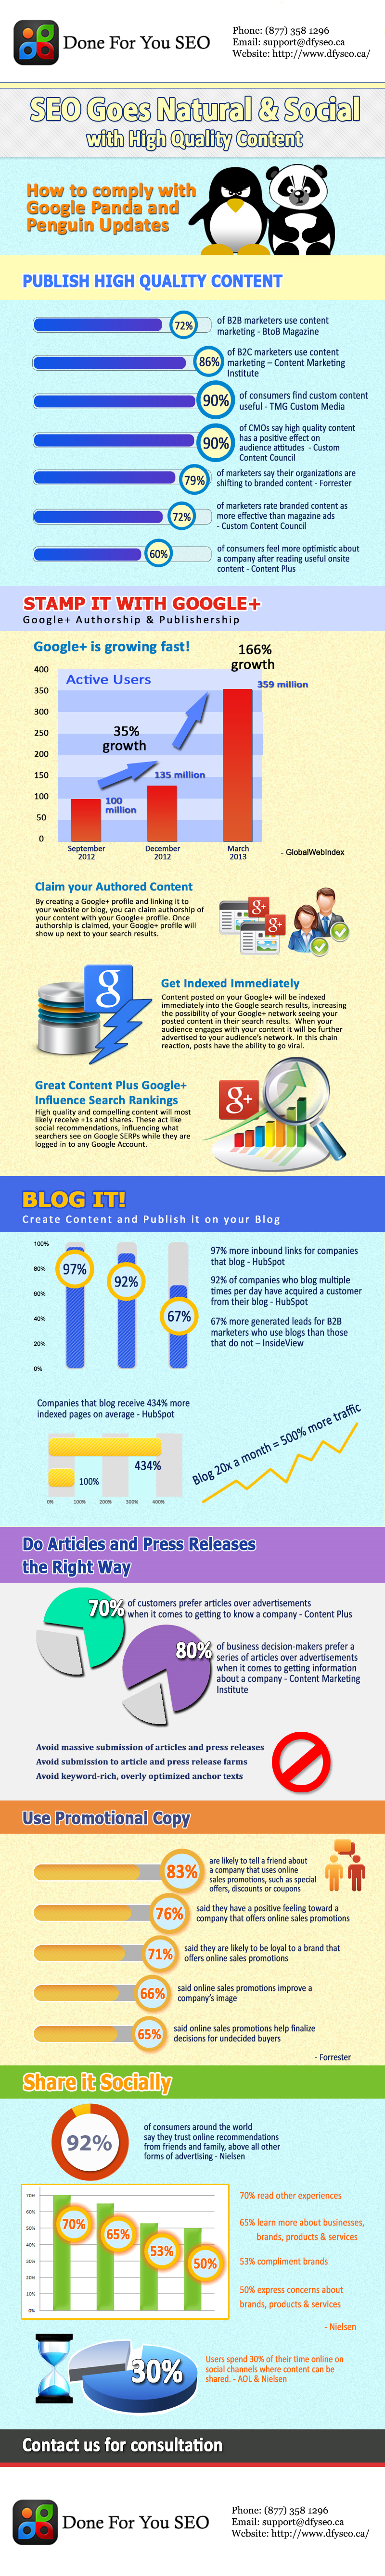 Done For You SEO - SEO Infographic